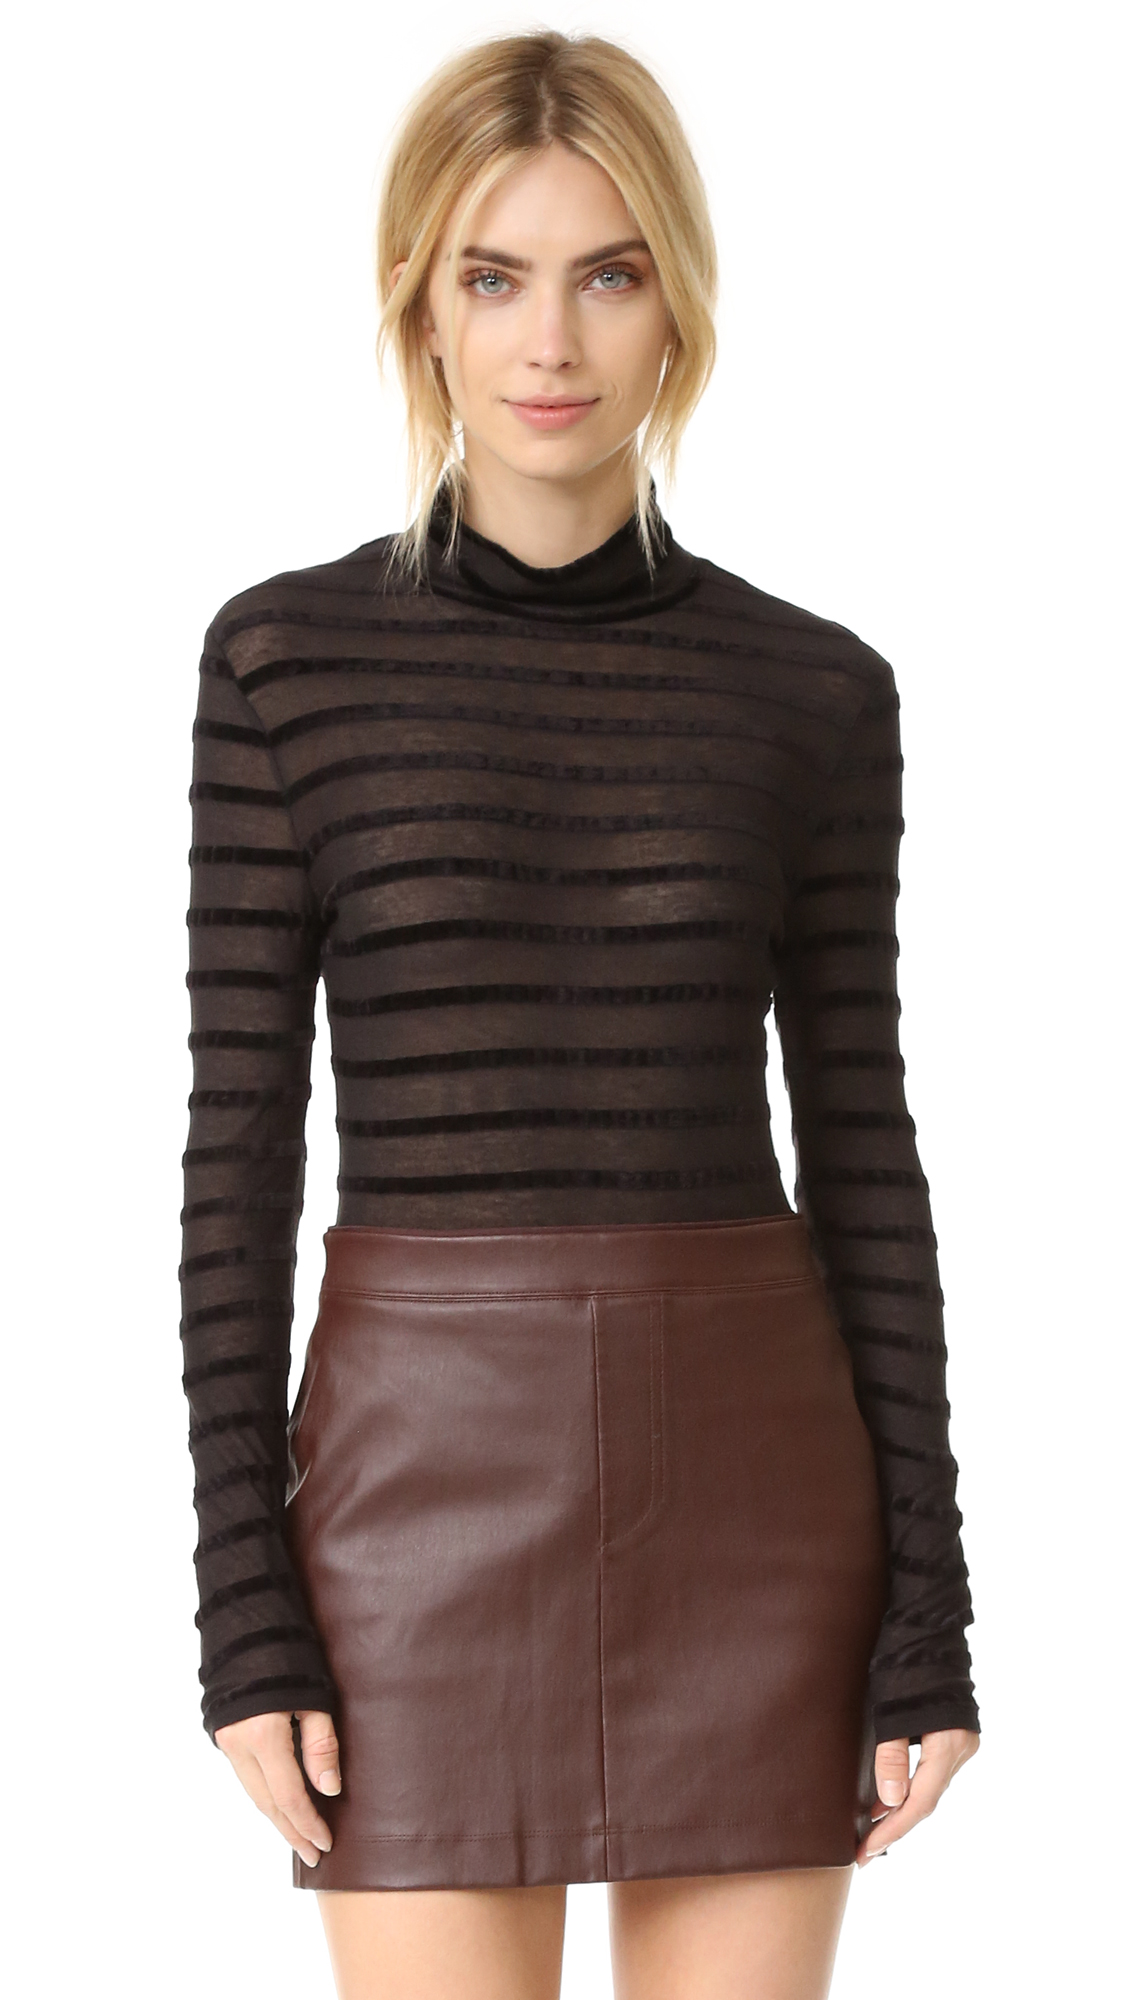 Bcbgmaxazria Turtleneck Sweater With Stripes - Black Combo at Shopbop